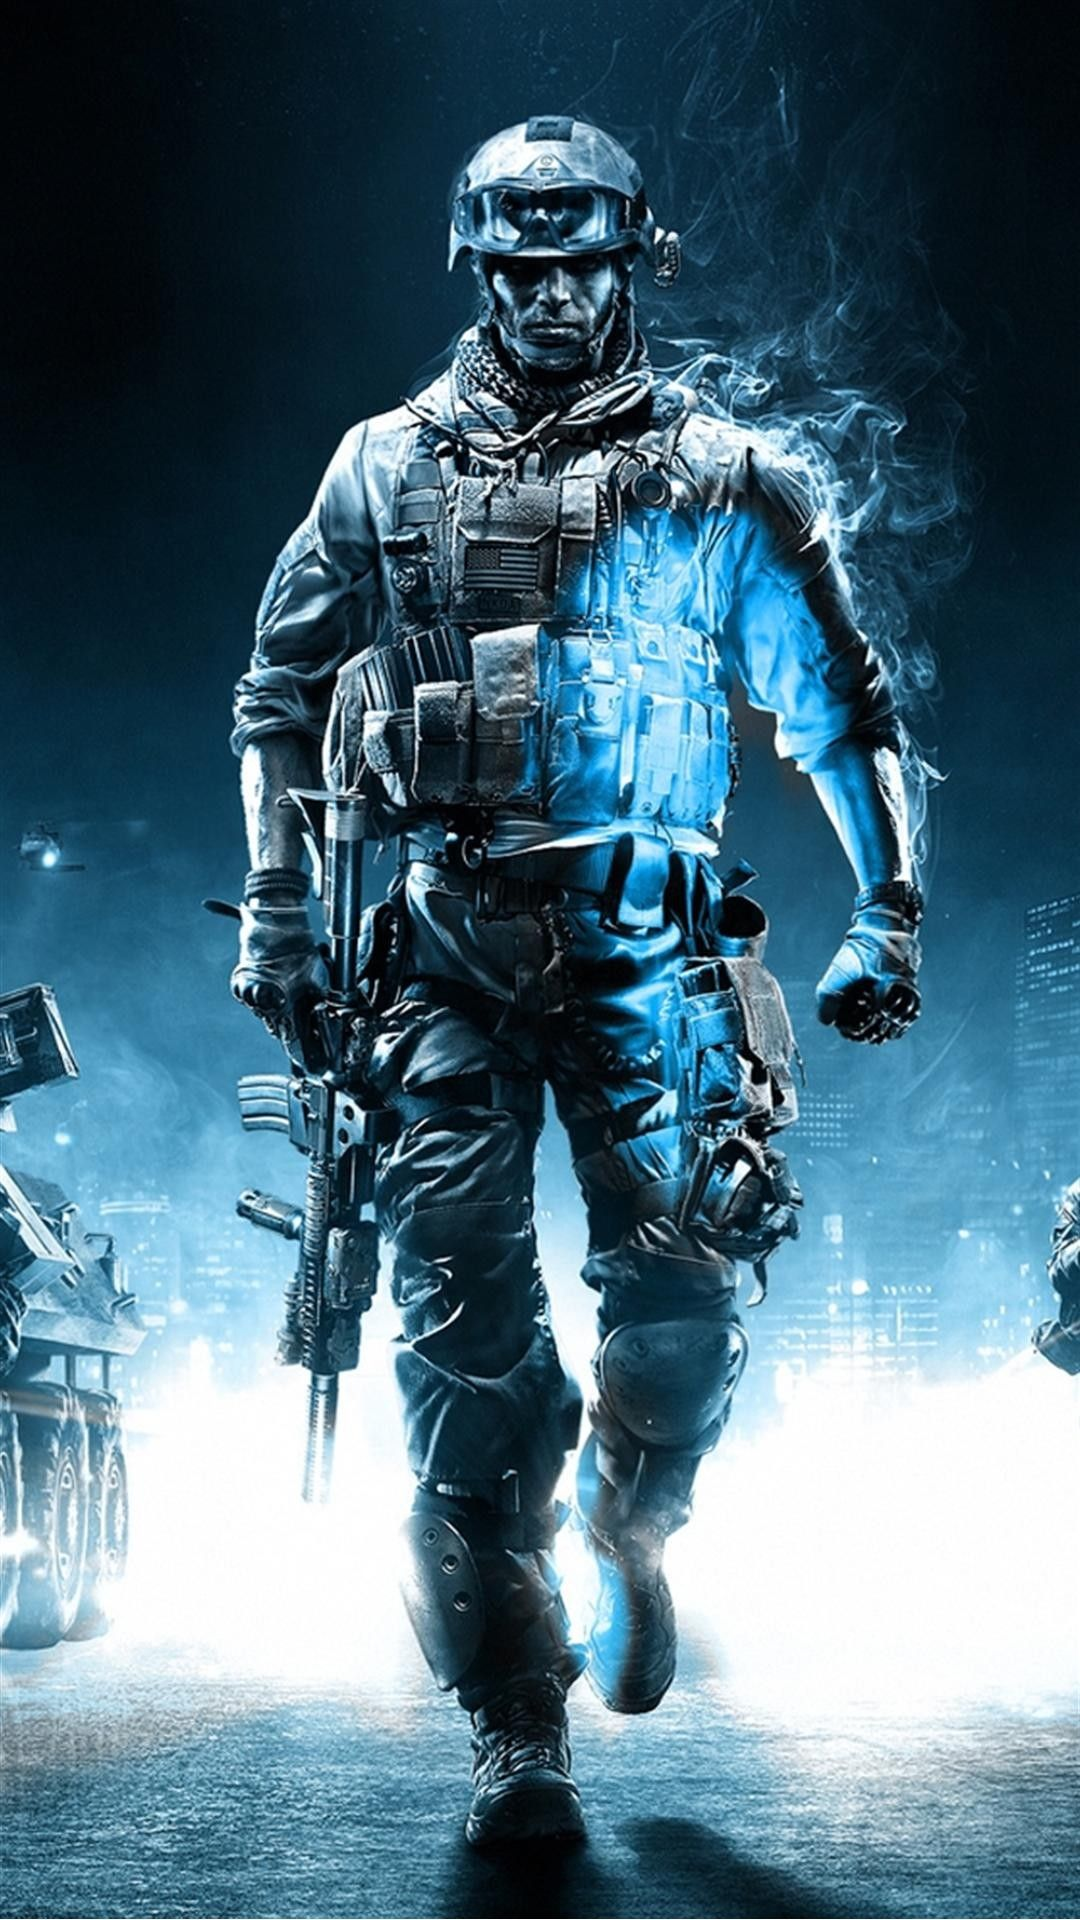 Call Of Duty Ghosts Soldier Iphone 6 Plus Hd Wallpaper Iphone